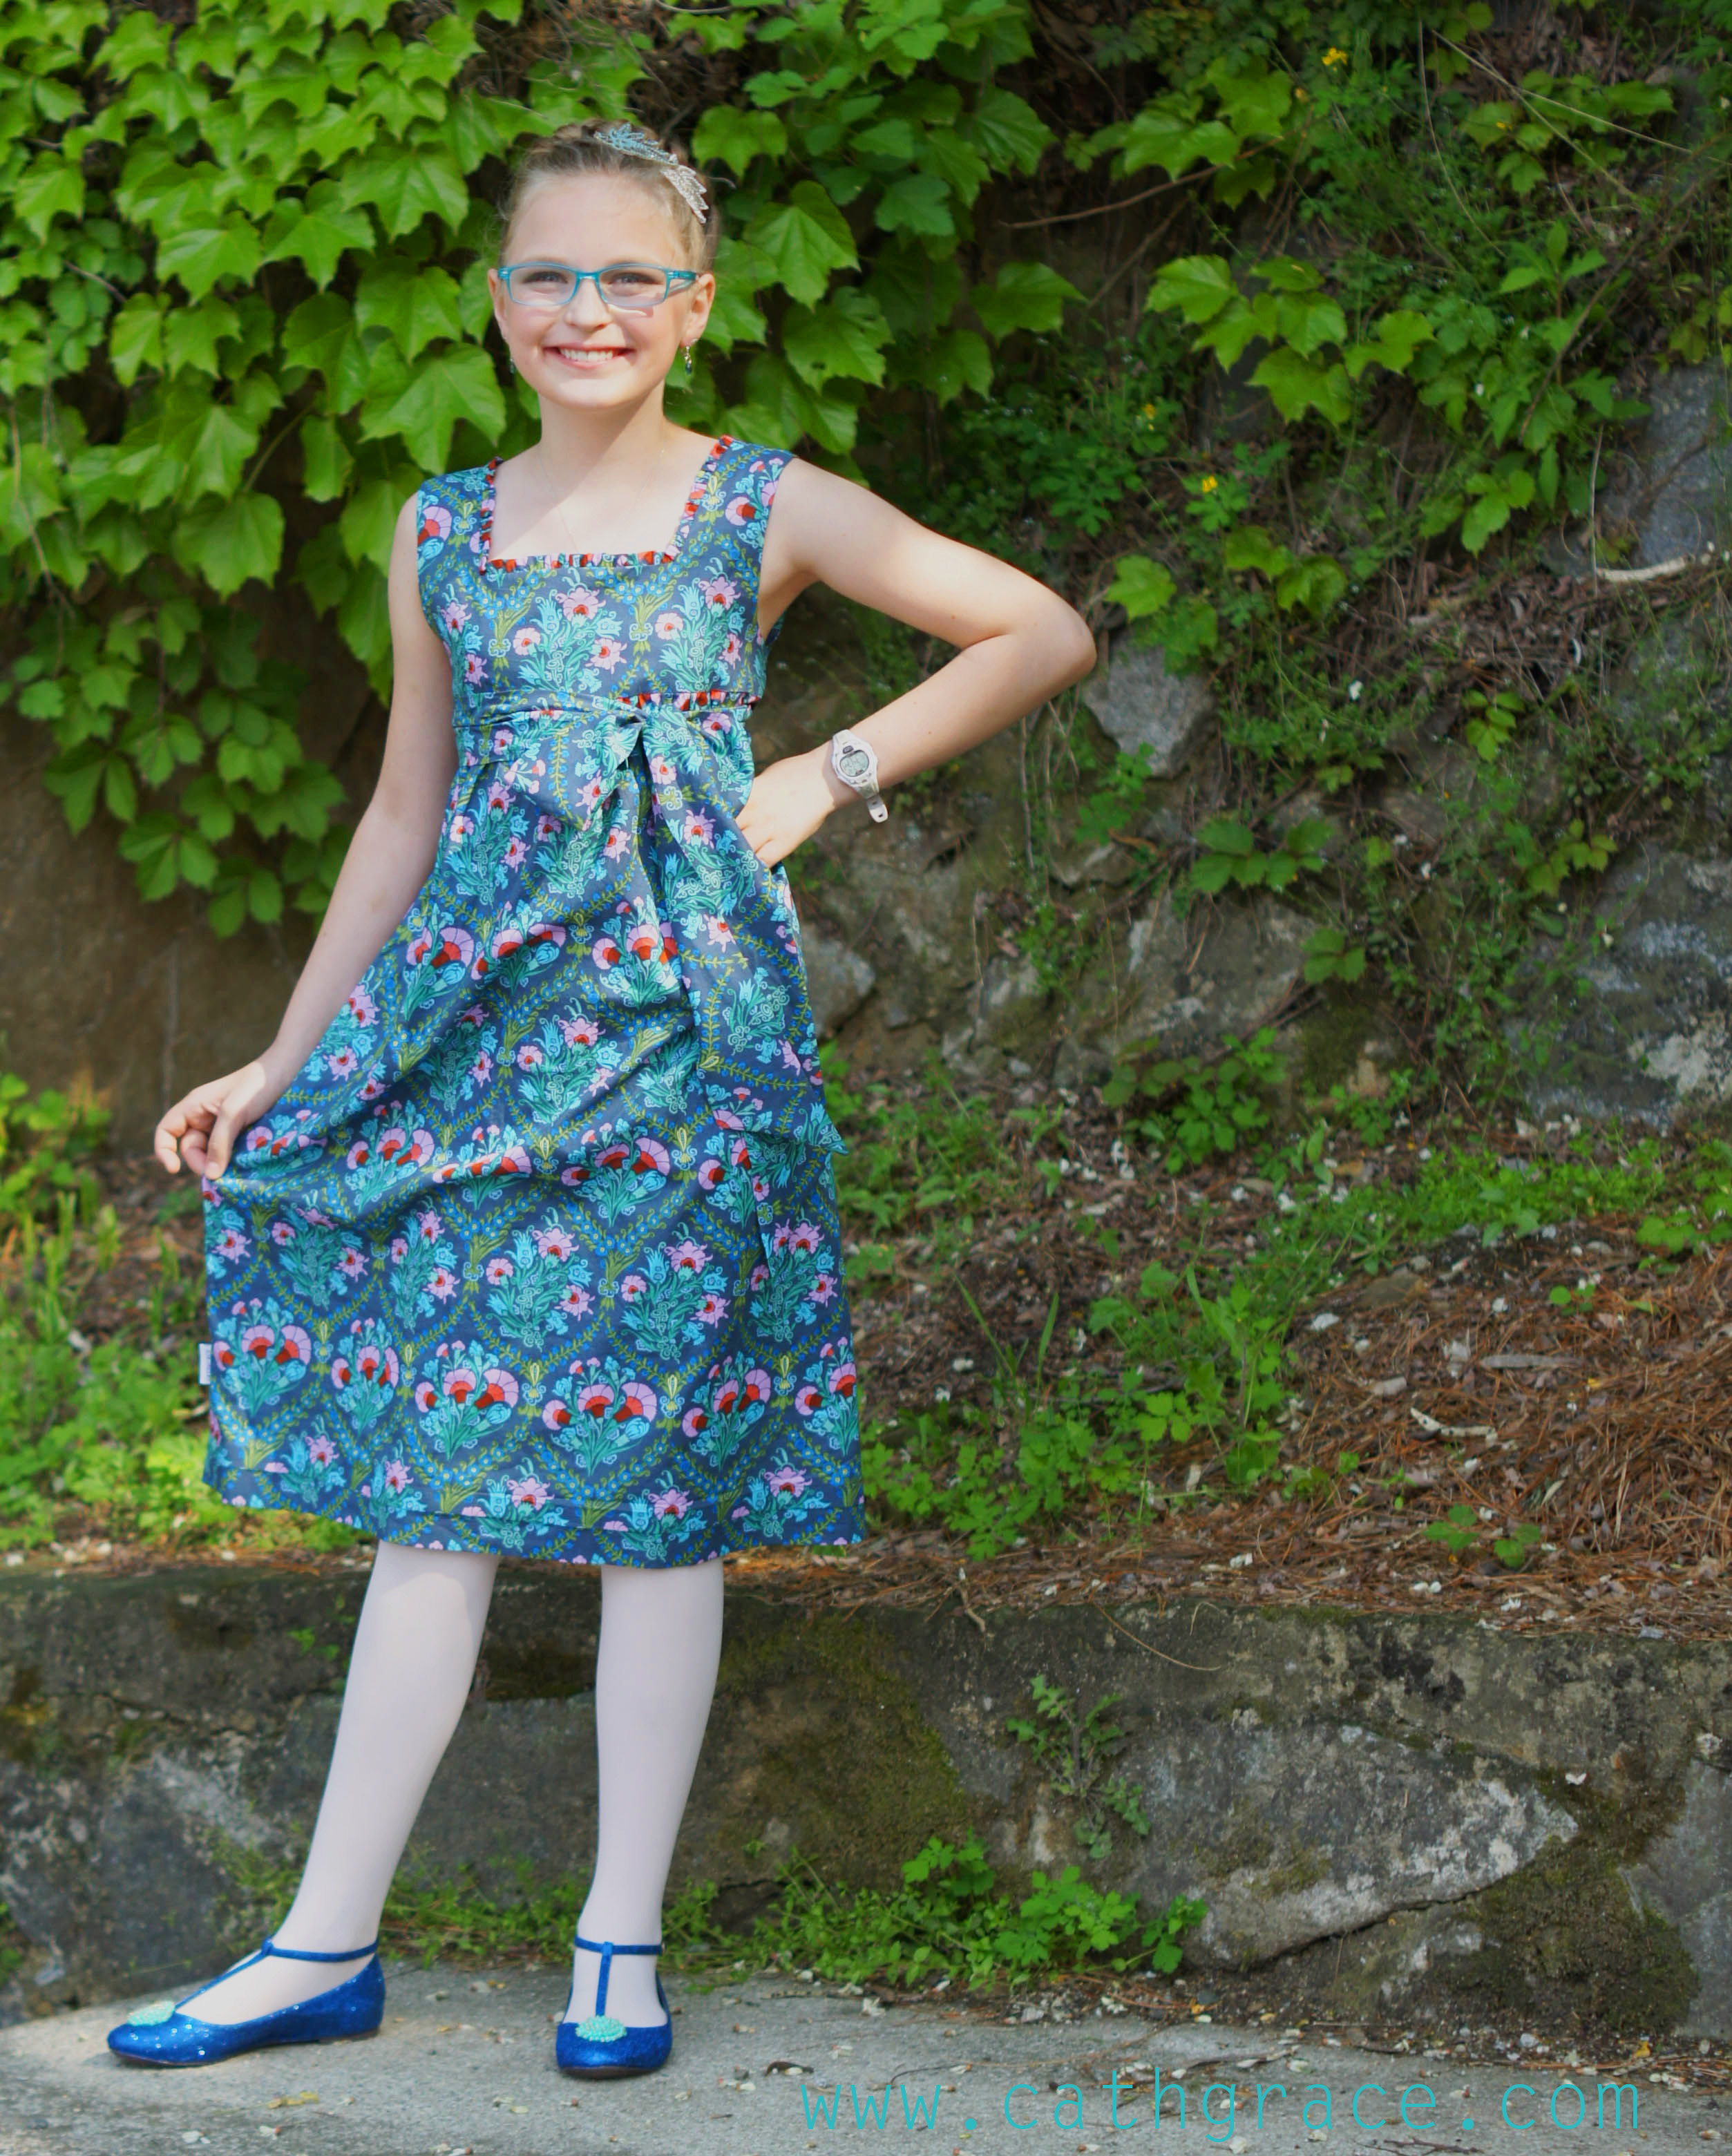 Boys Wear Skirts And Dresses Stories – 2017-2018 Fashion ...